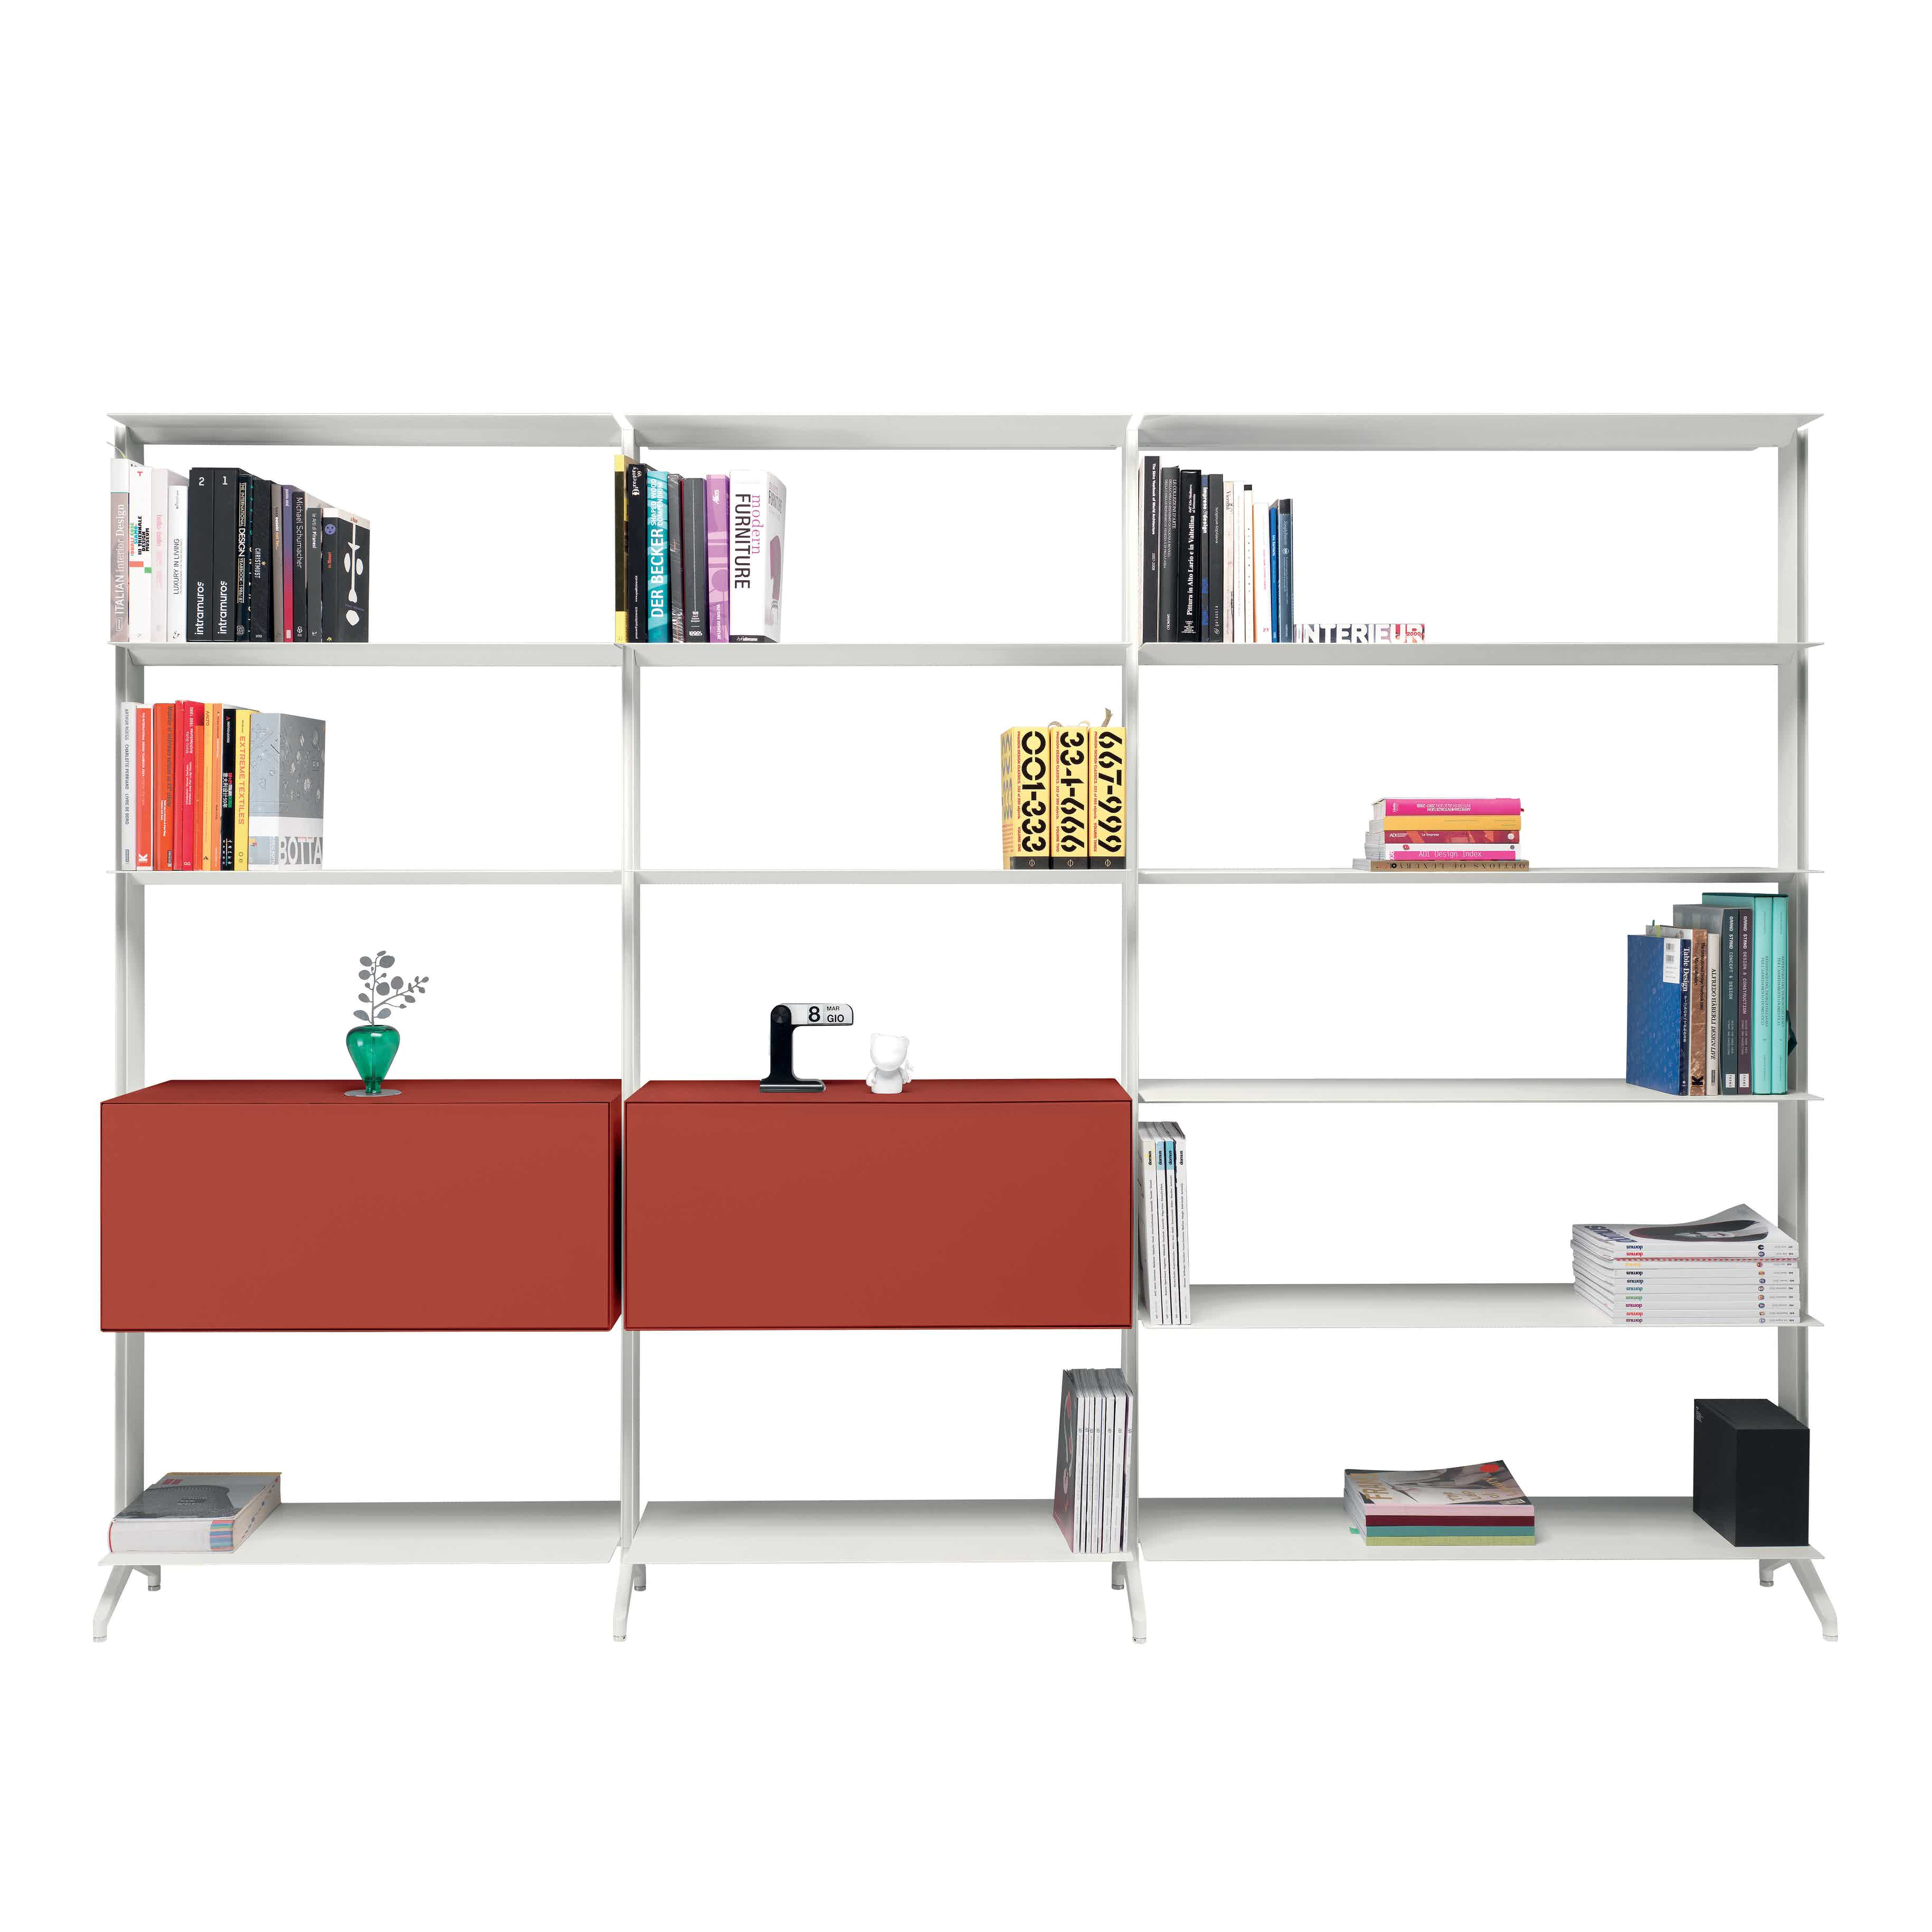 Alias-furniture-aline-shelving-system-red-drawers-thumb-haute-living